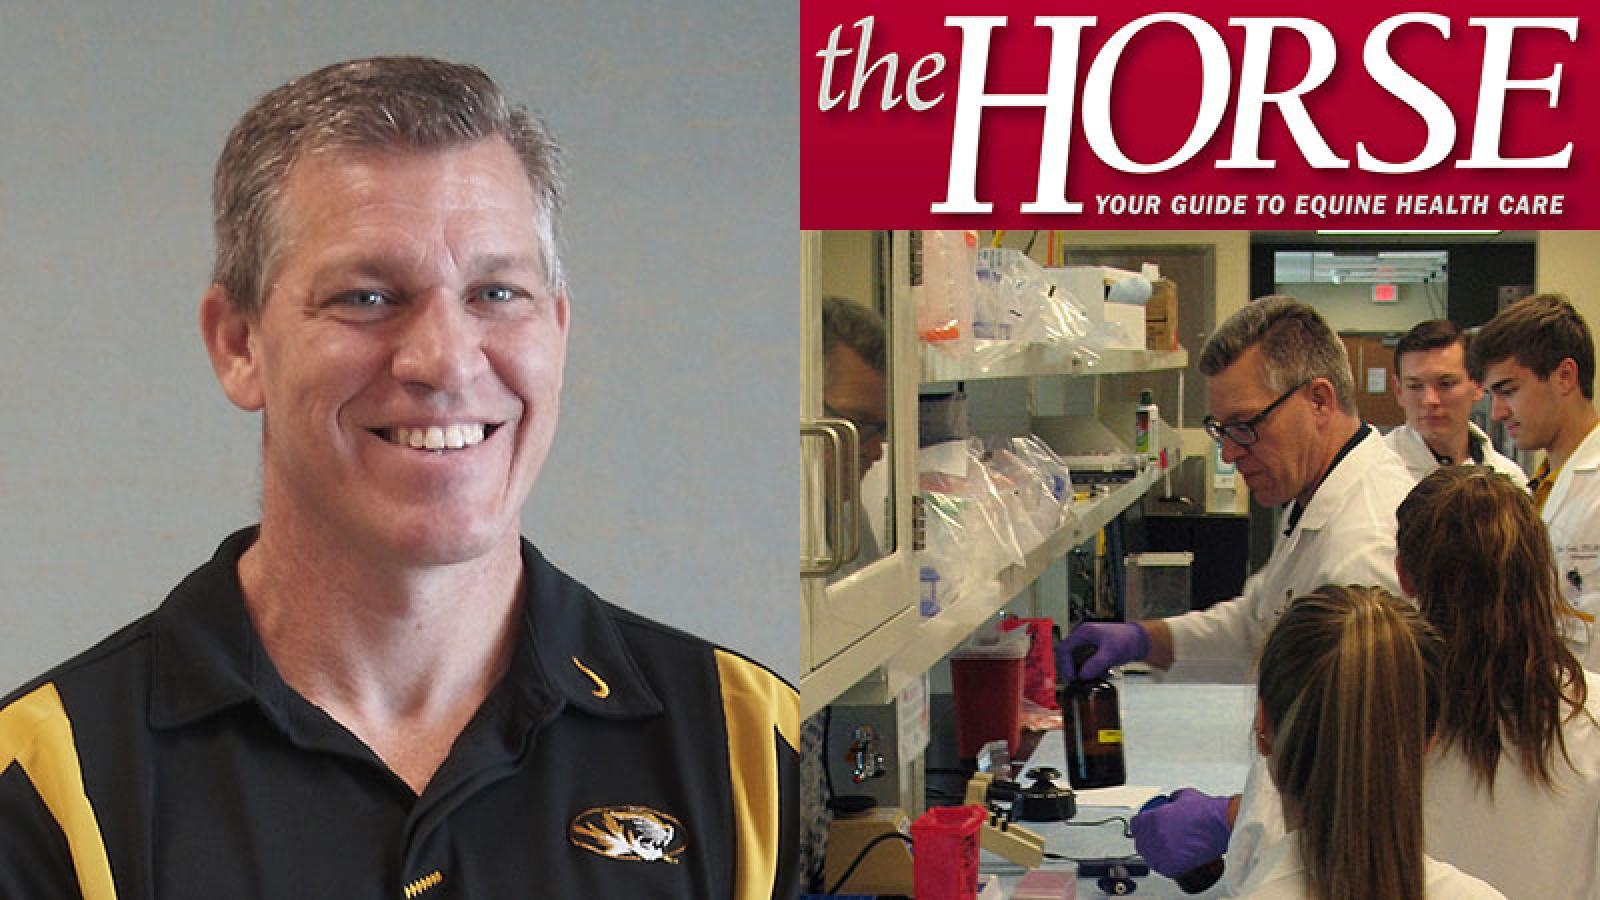 Research Led by Stoker Featured in Popular Equine Magazine